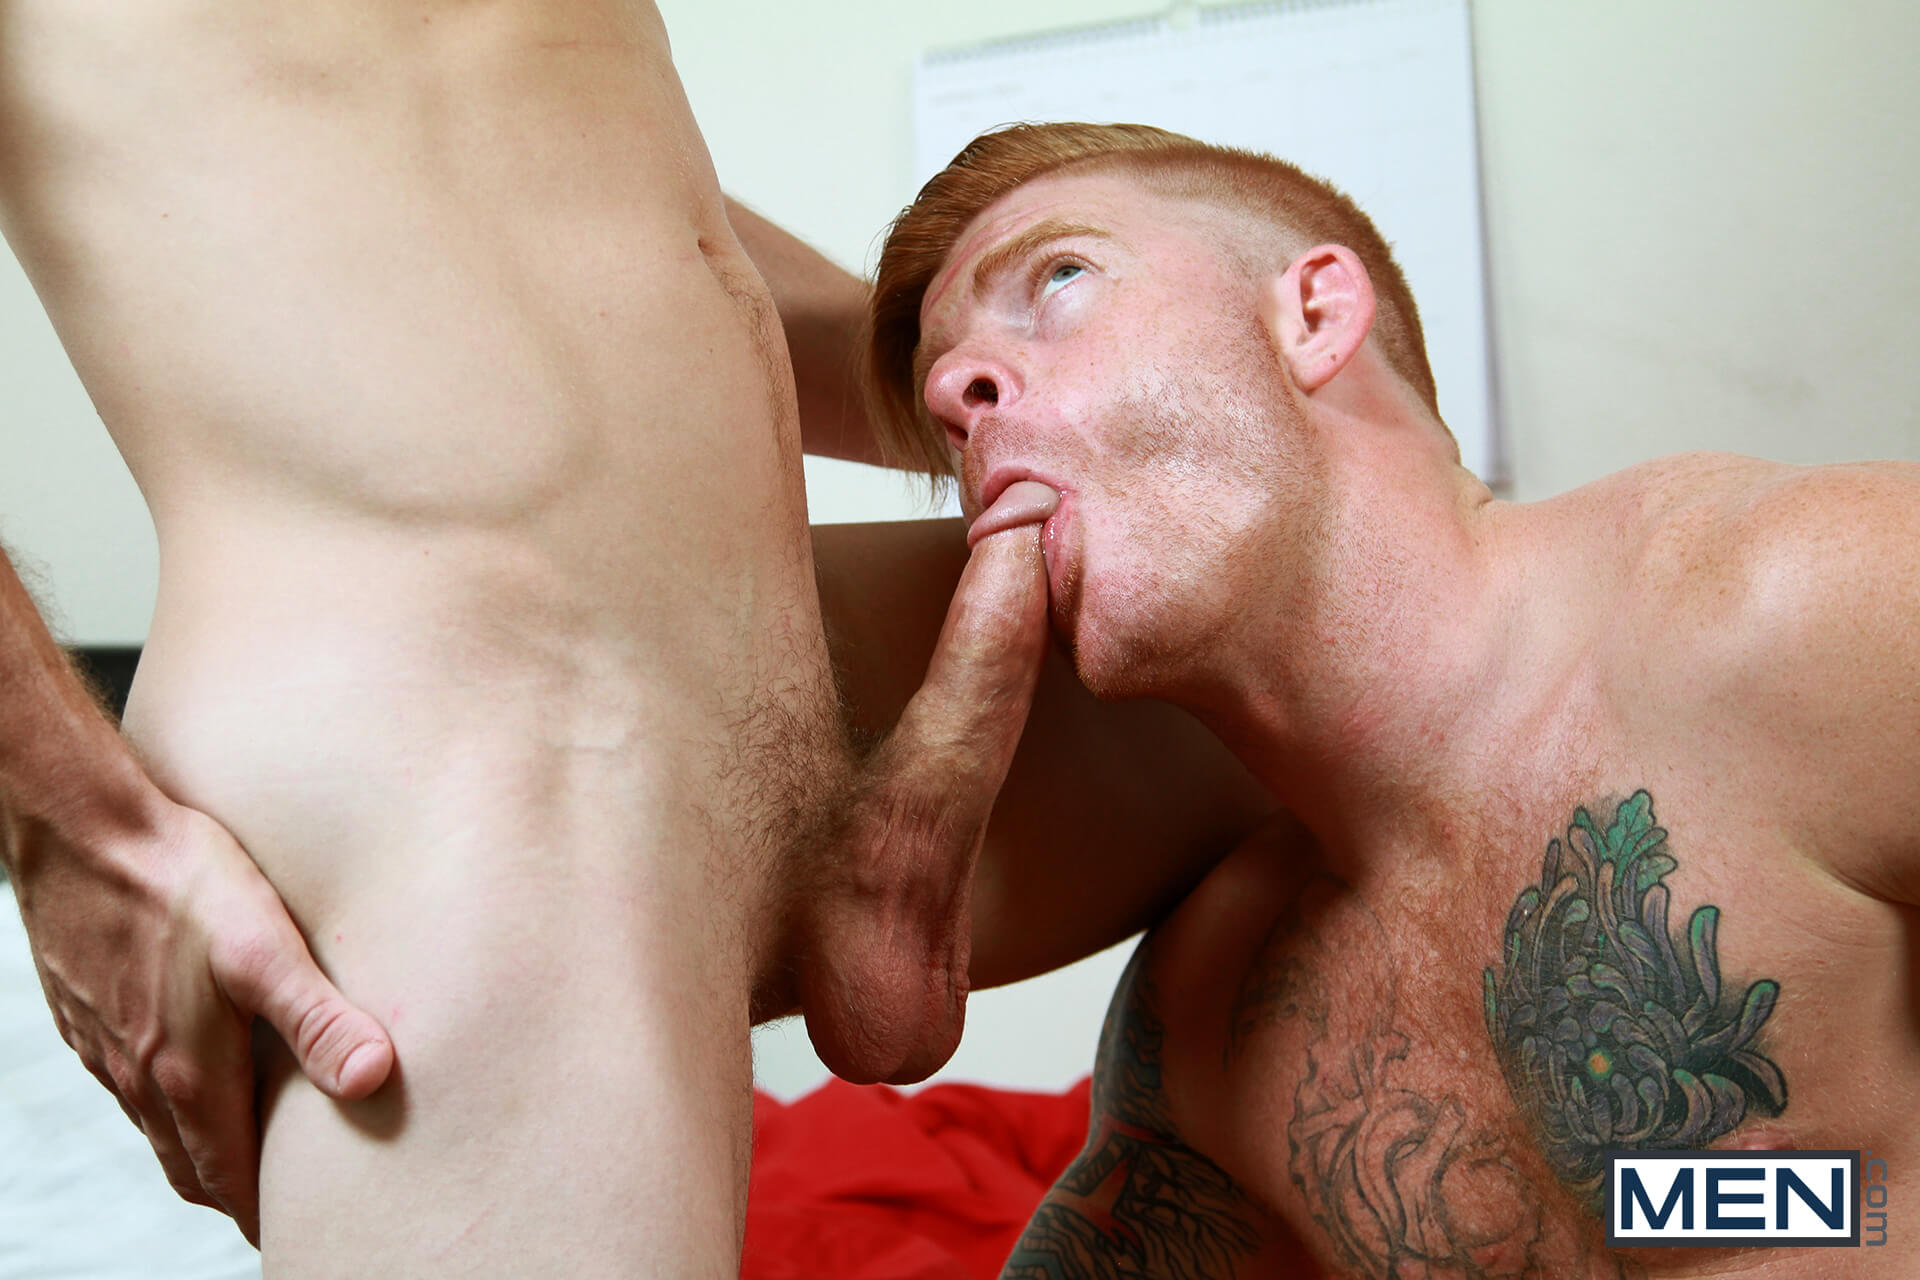 men big dicks at school cross check part 2 bennett anthony paul canon gay porn blog image 12